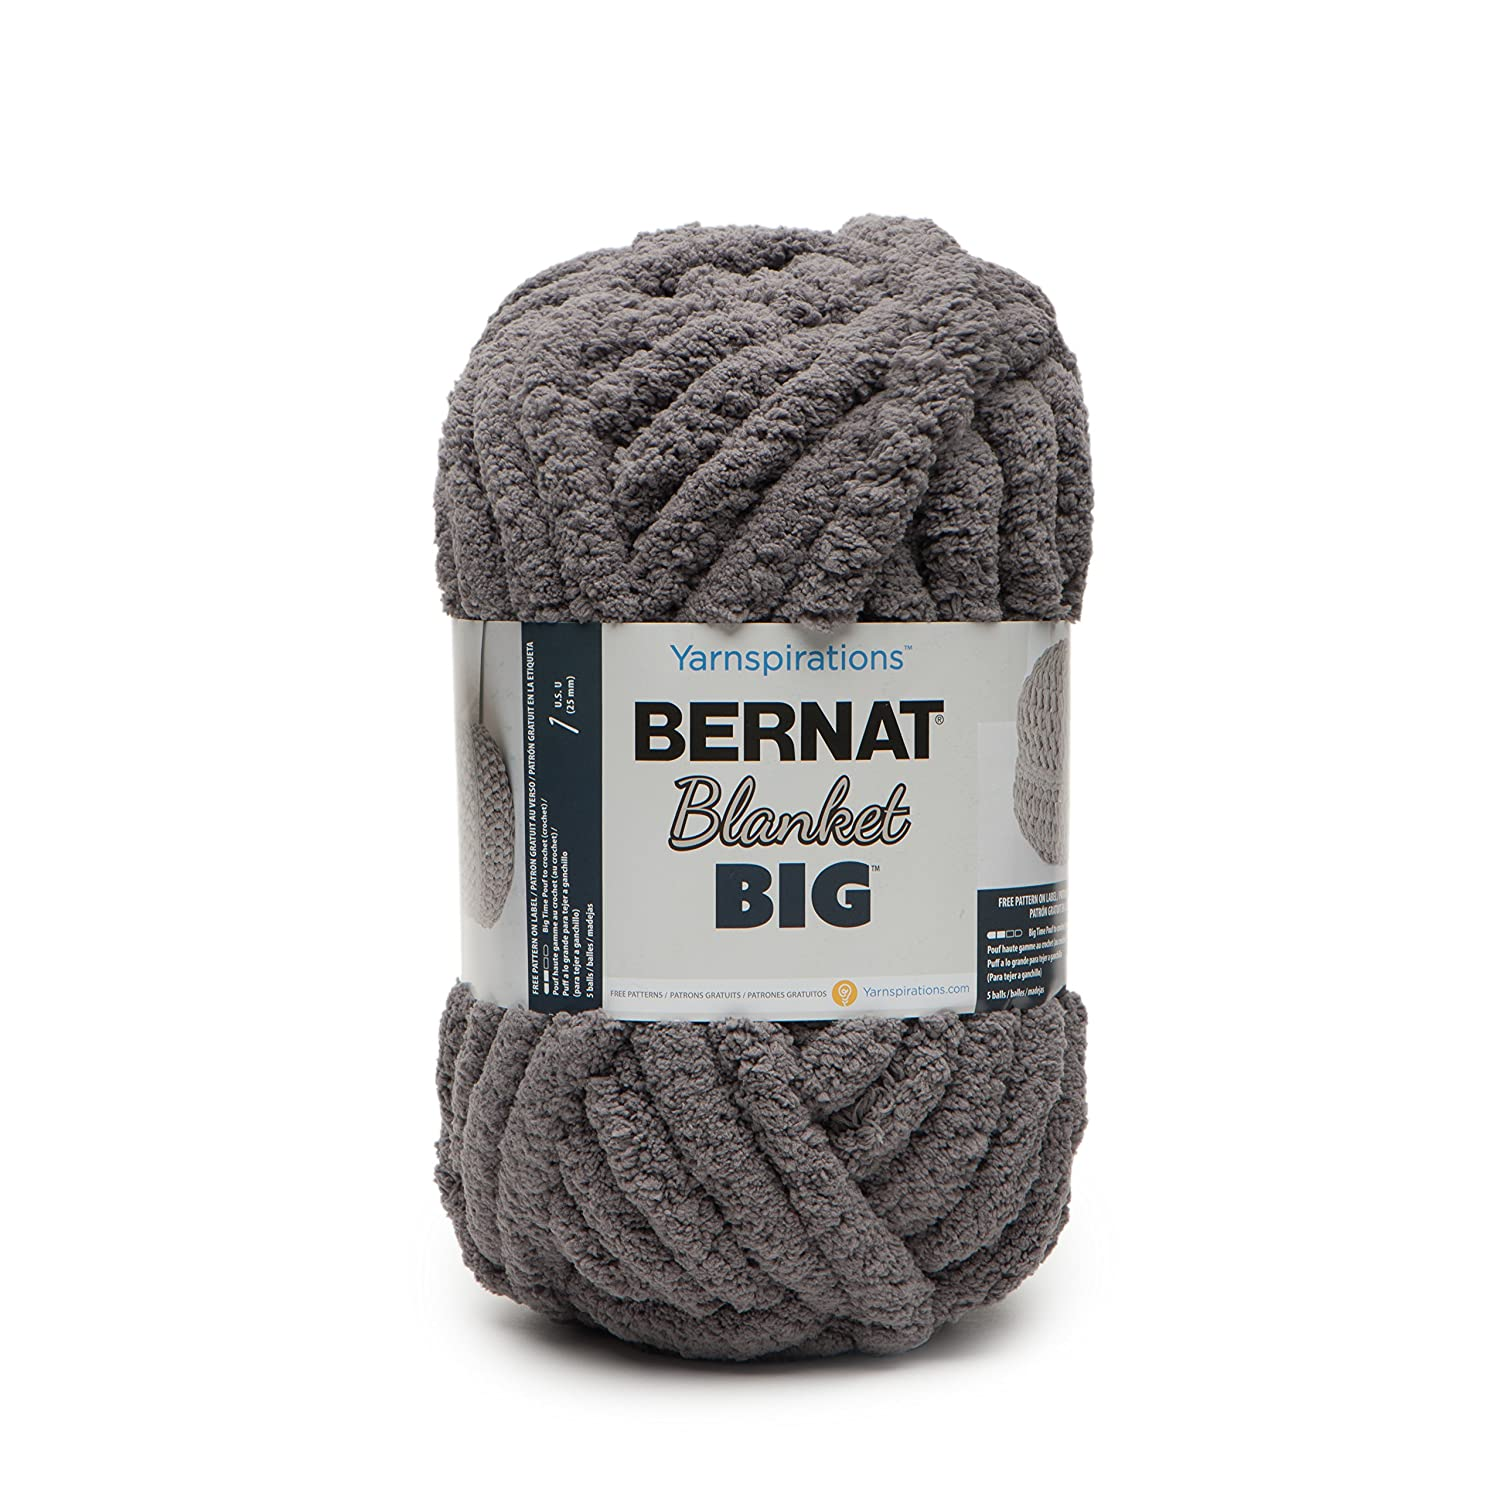 BERNAT BLANKET BIG -300G GREY: Amazon.co.uk: Kitchen & Home